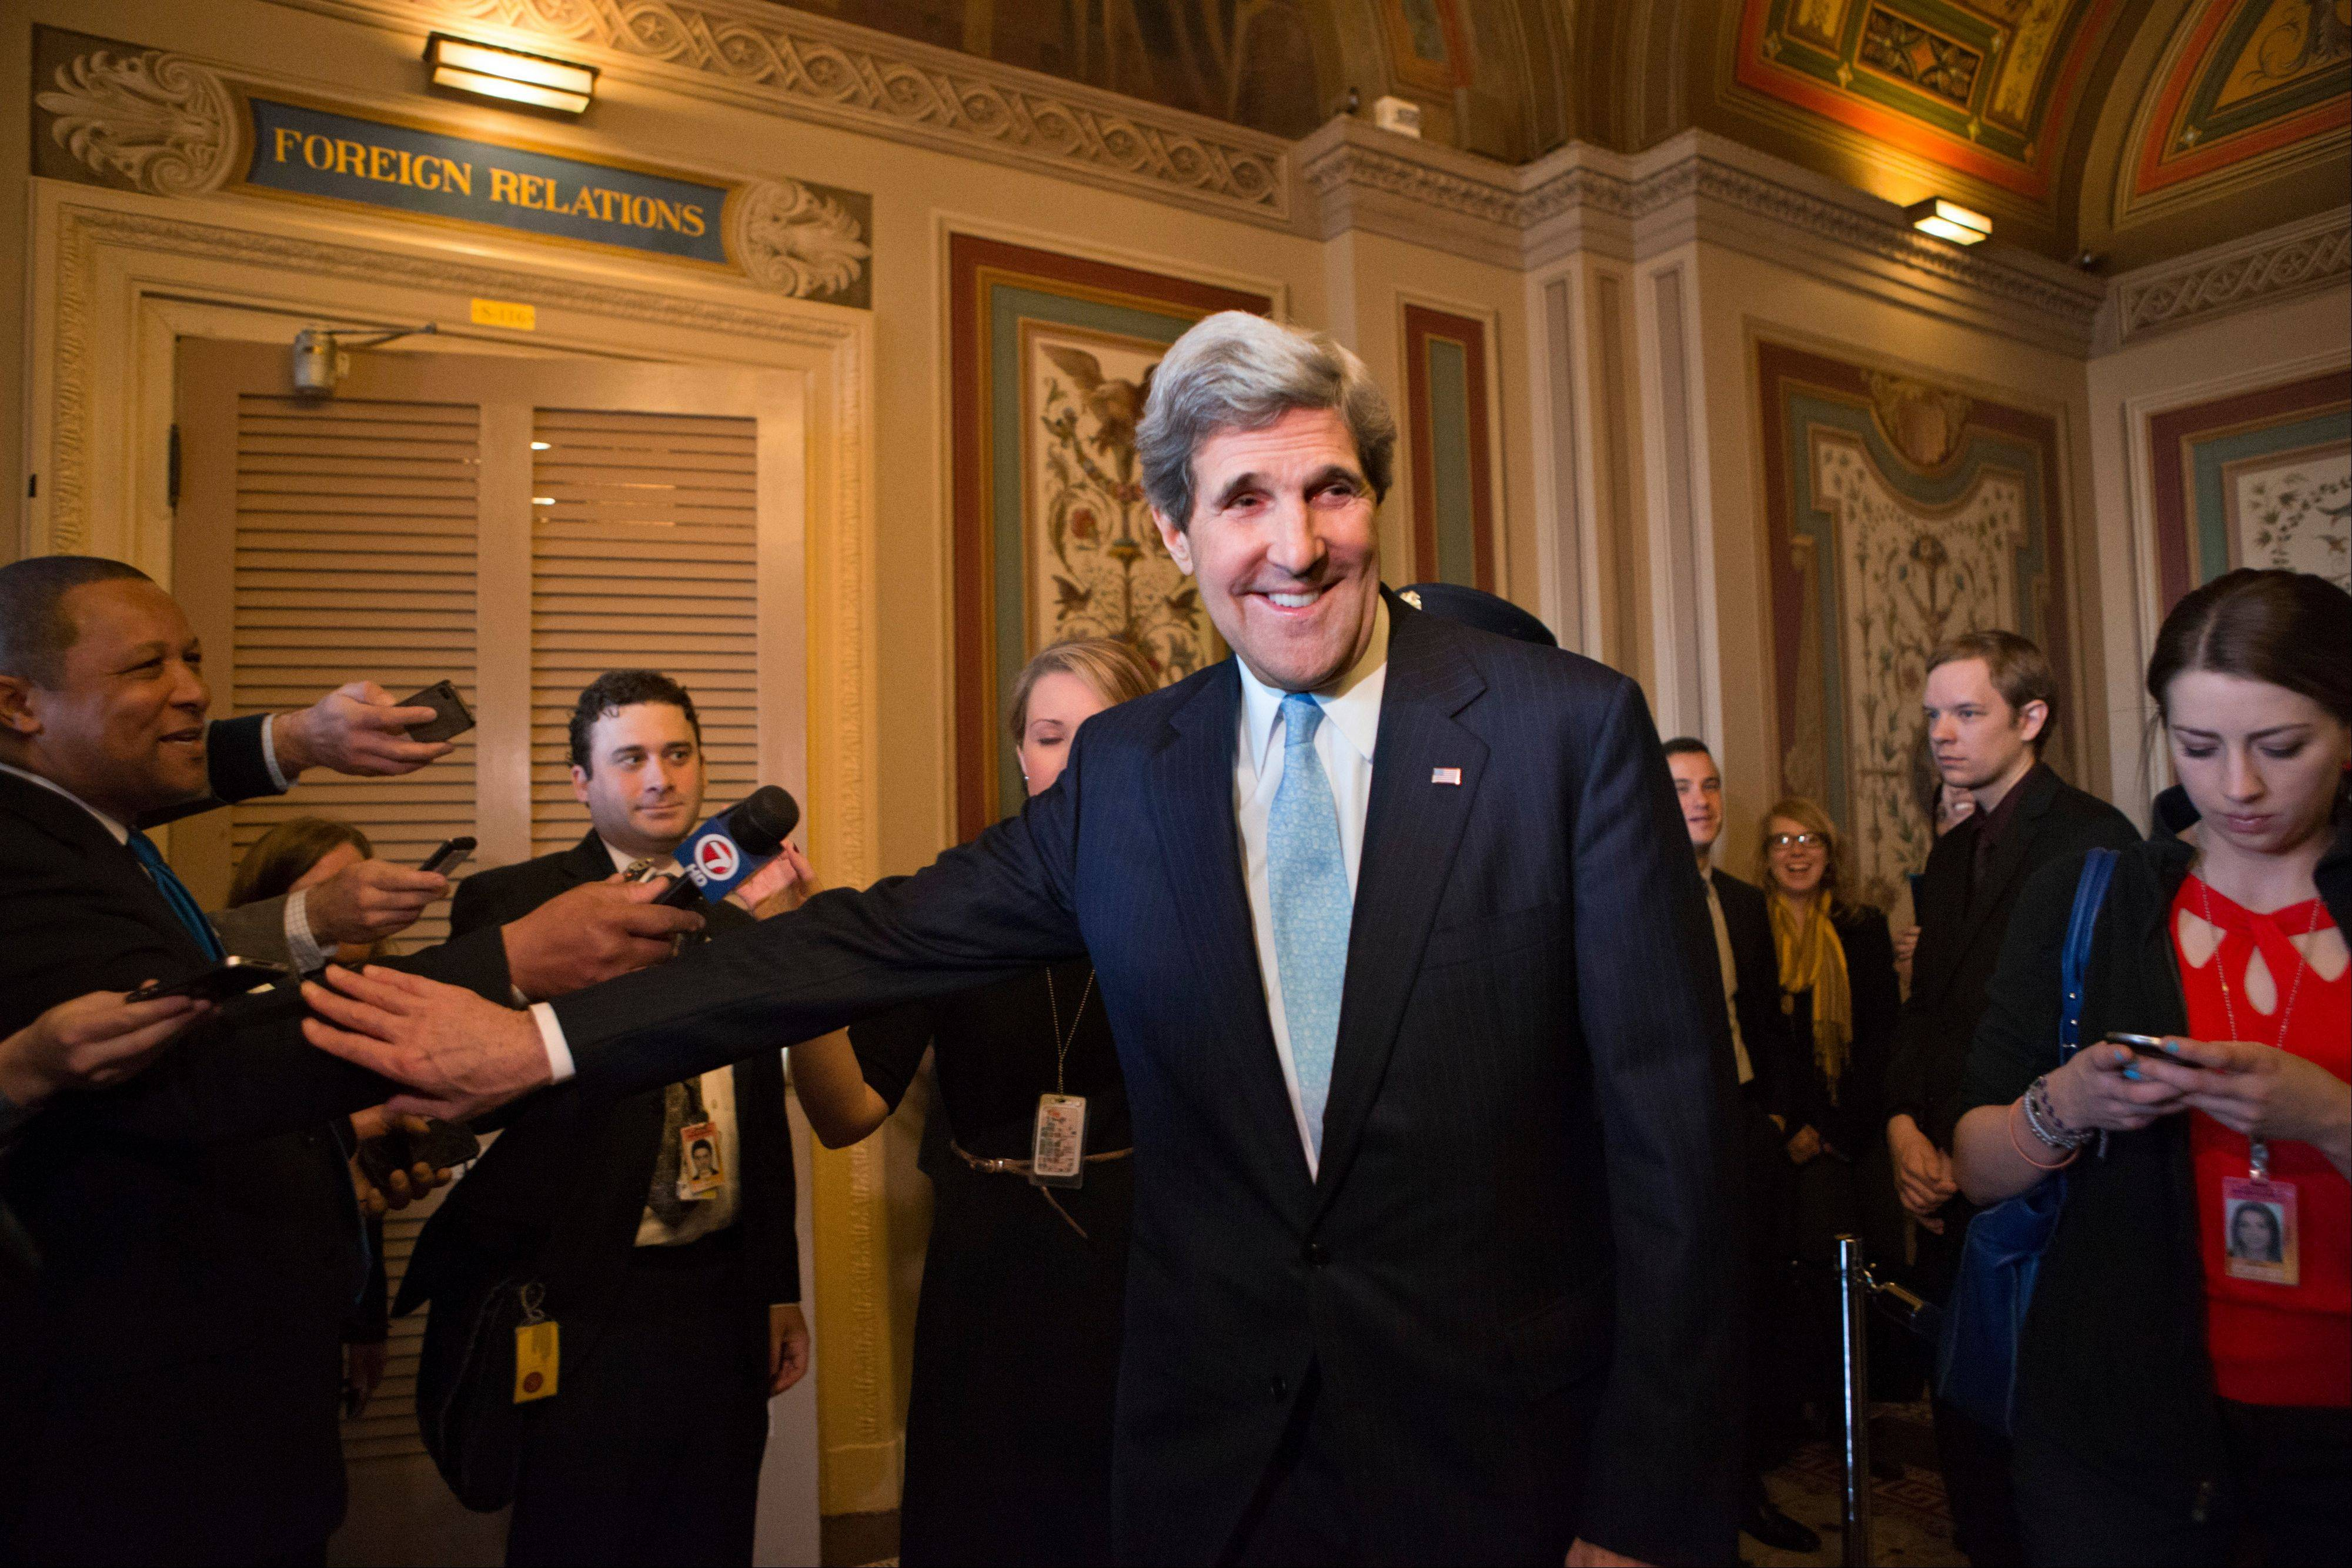 Sen. John Kerry was confirmed Tuesday by the Senate to become President Barack Obama's new secretary of state, replacing Hillary Rodham Clinton.